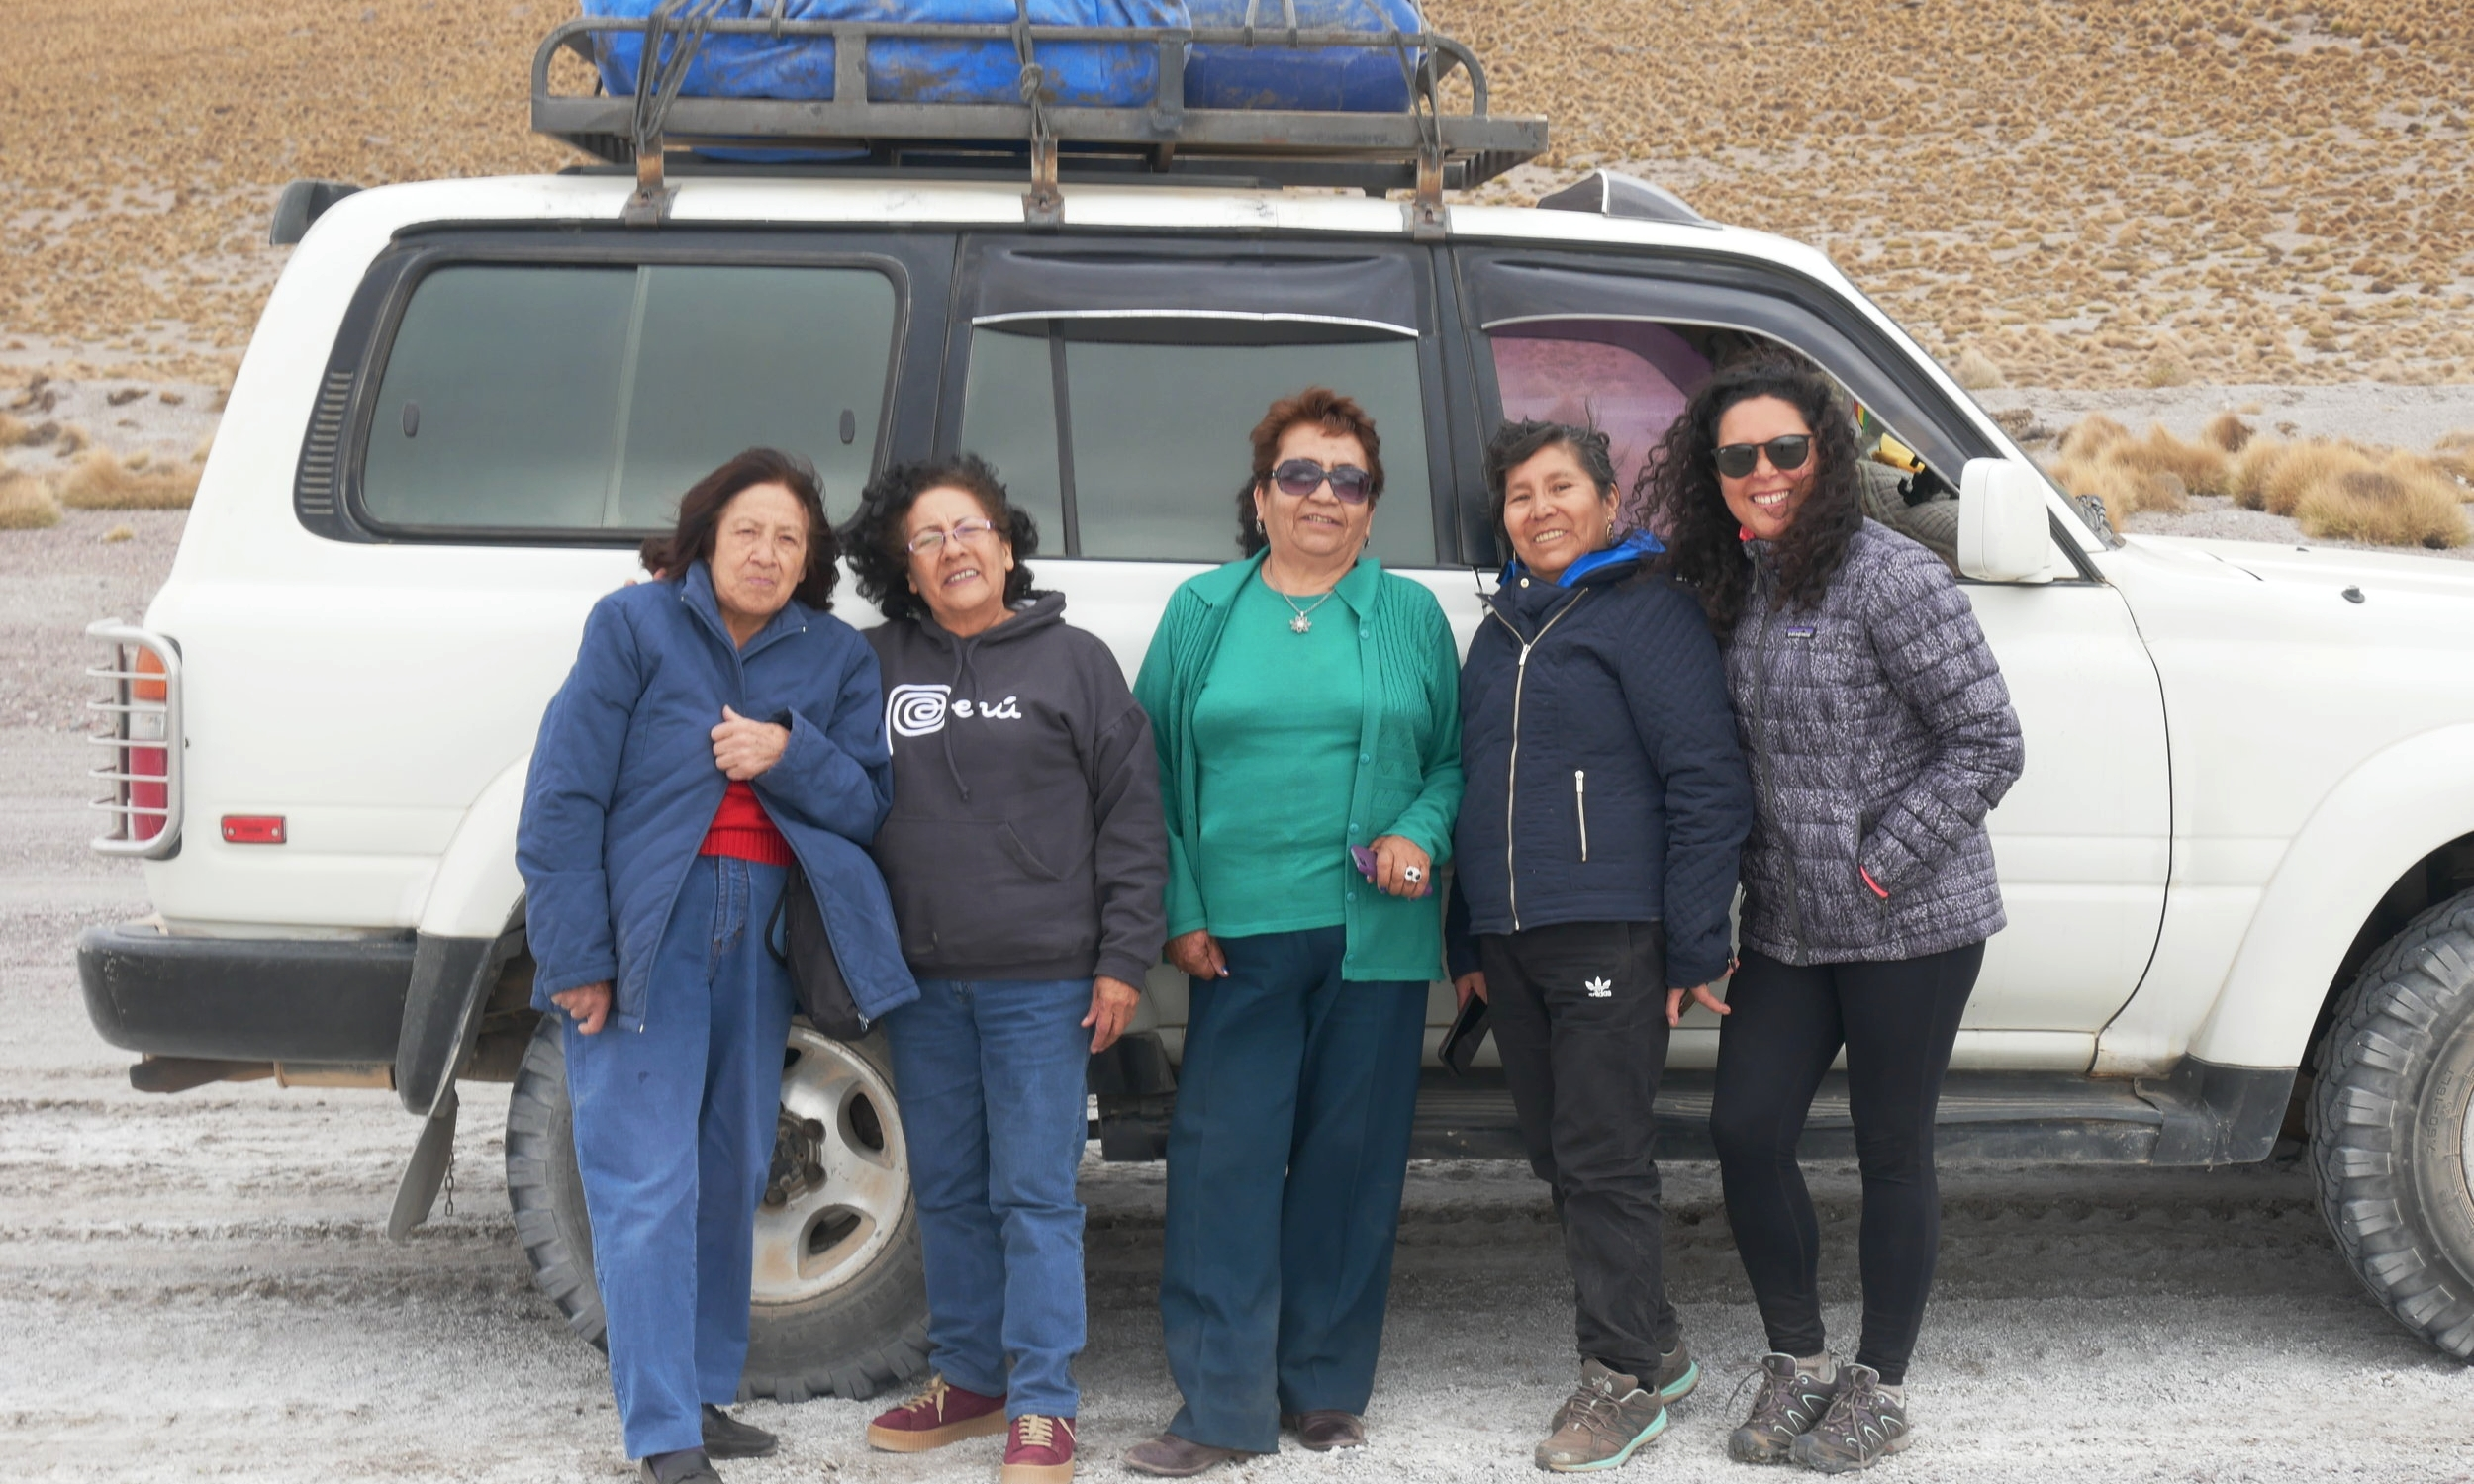 With my unexpected tour group grandmas, who ended up taking good care of me